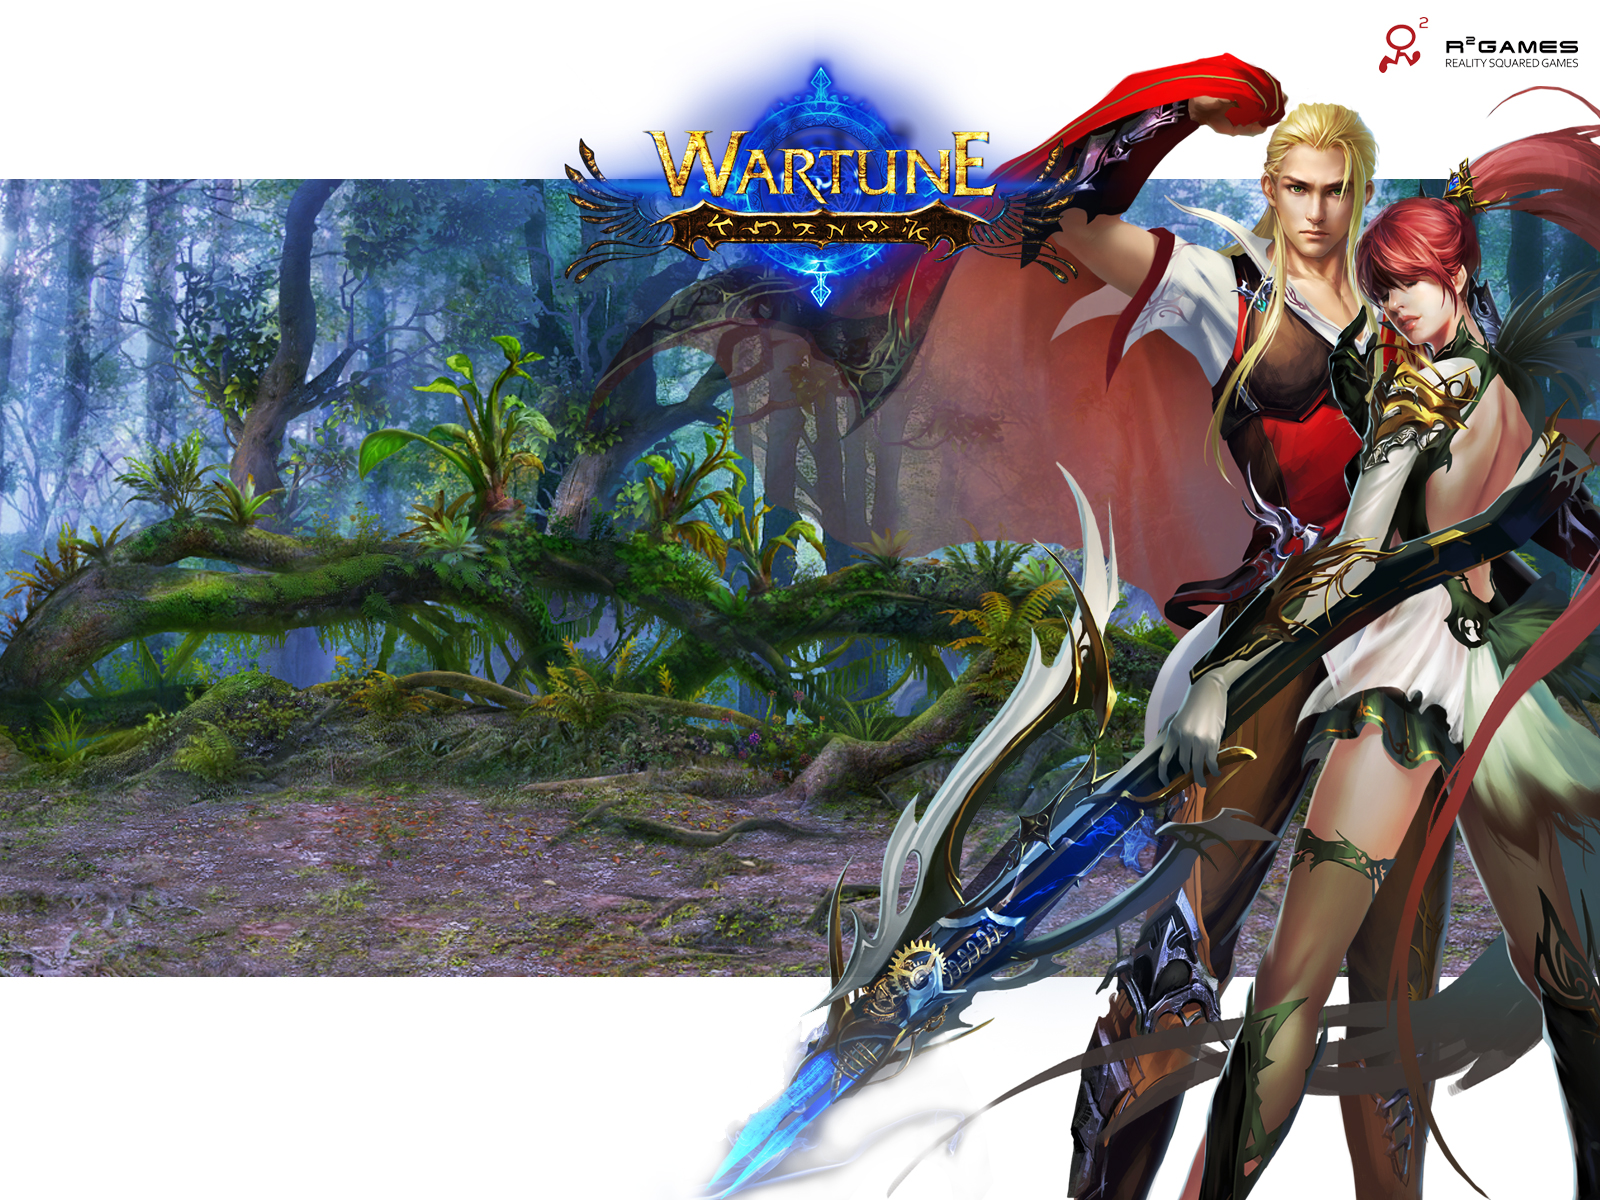 Video Game - Wartune  Video Game MMORPG Wallpaper